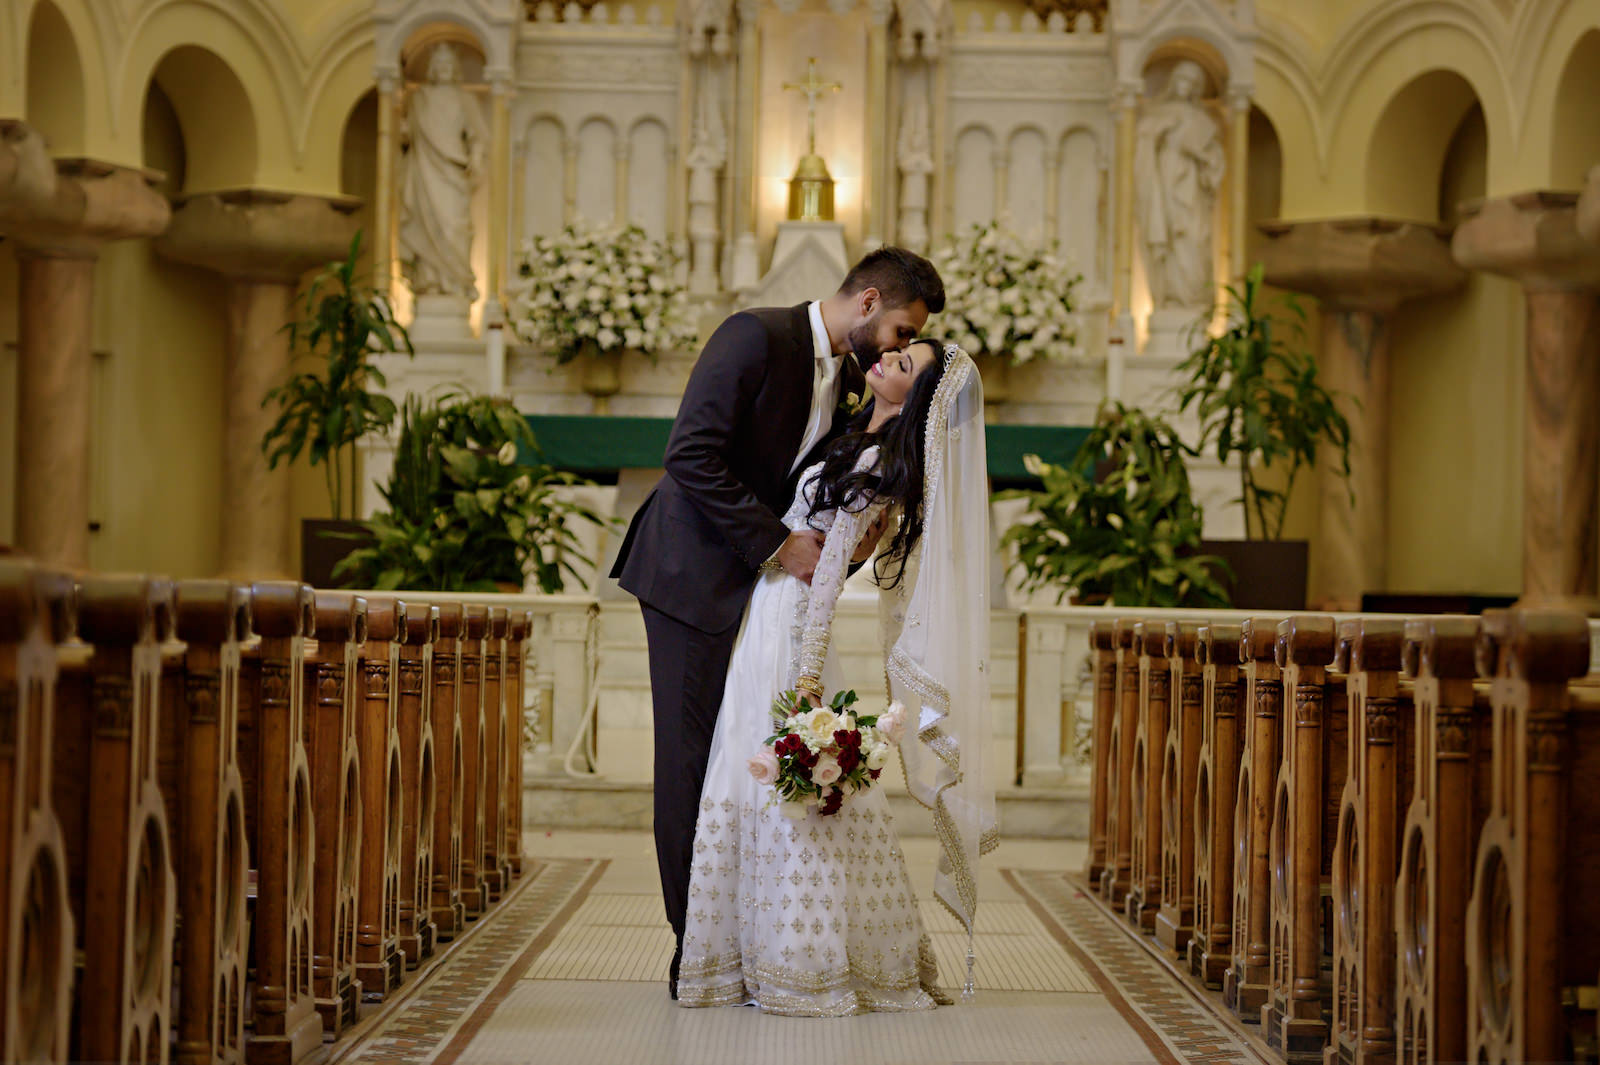 Indian Bride and Groom Church Cathedral Portrait | Indian Catholic Wedding | Florida Multicultural Wedding Ceremony | Catholic Wedding Ceremony at Sacred Heart Catholic Church